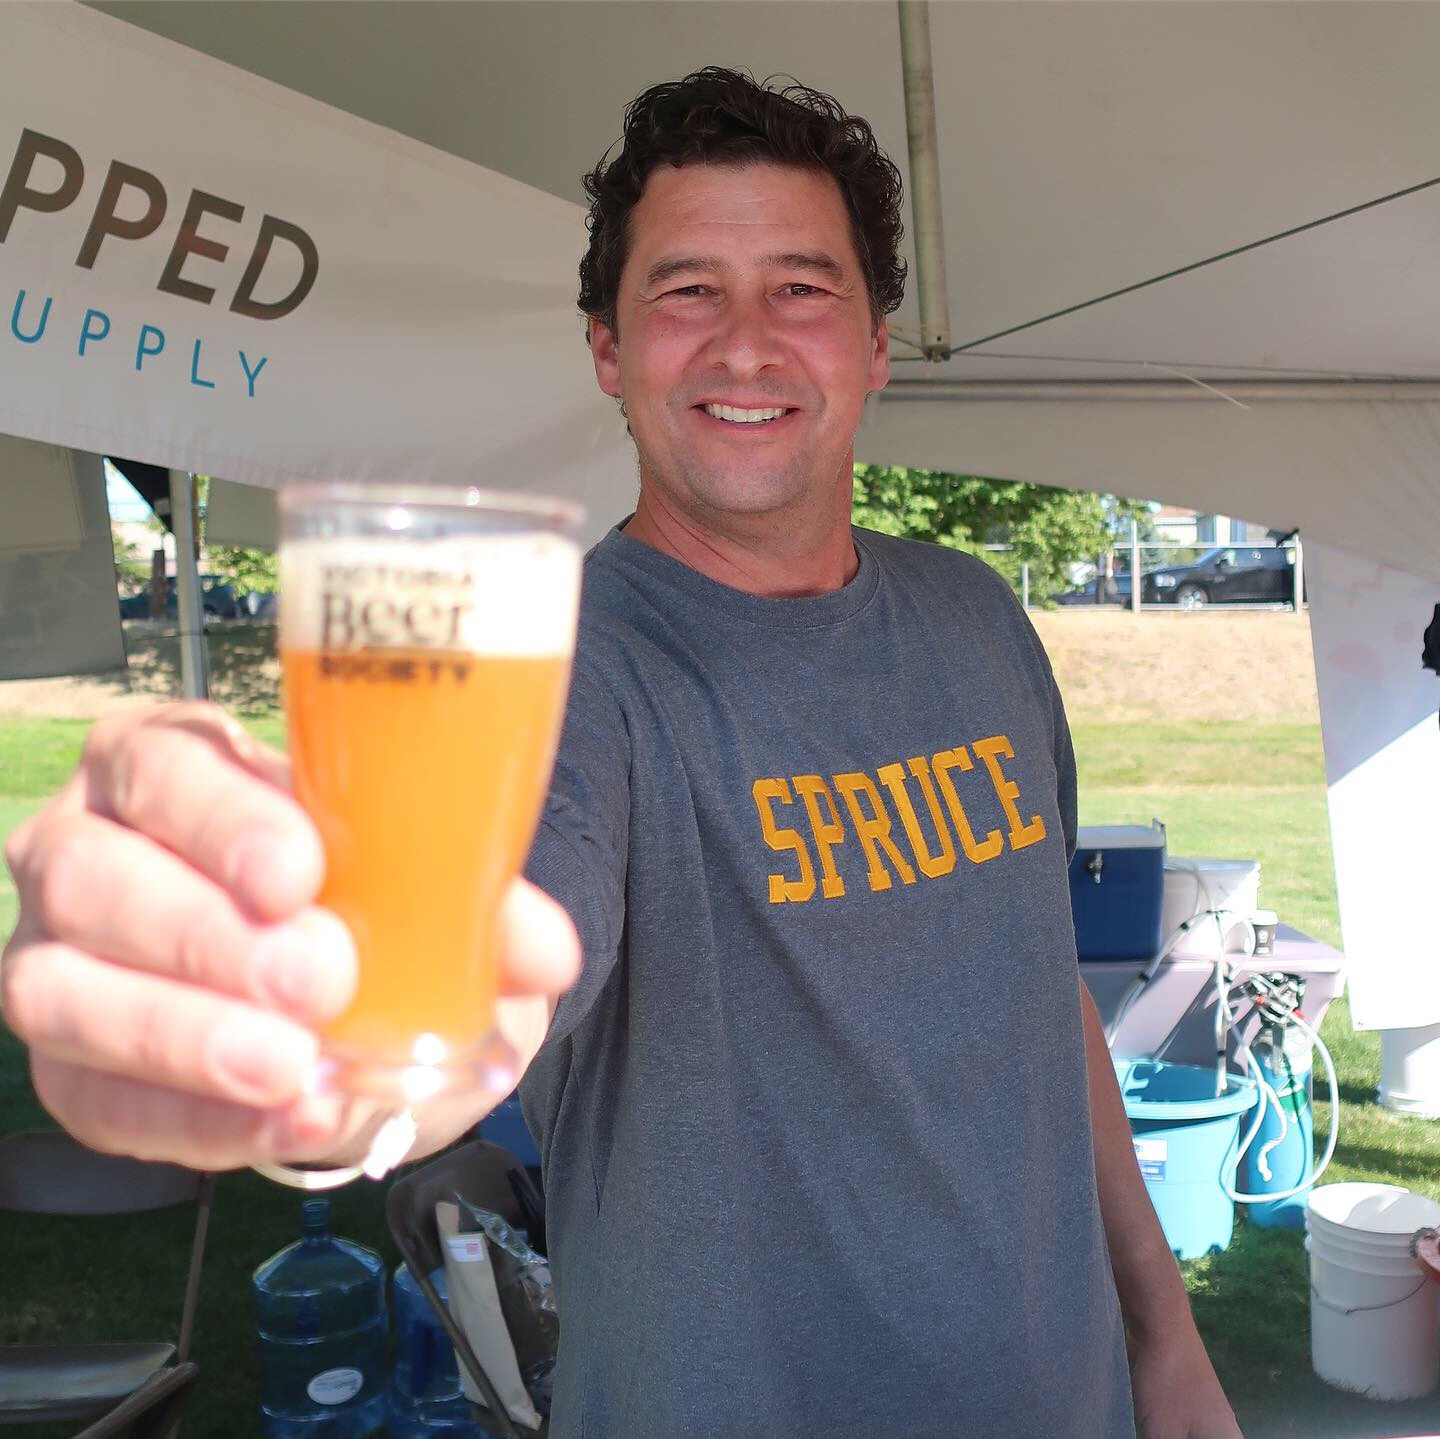 Big Spruce Brewing traveled from Nova Scotia to serve its beers at the 2019 Great Canadian Beer Festival.